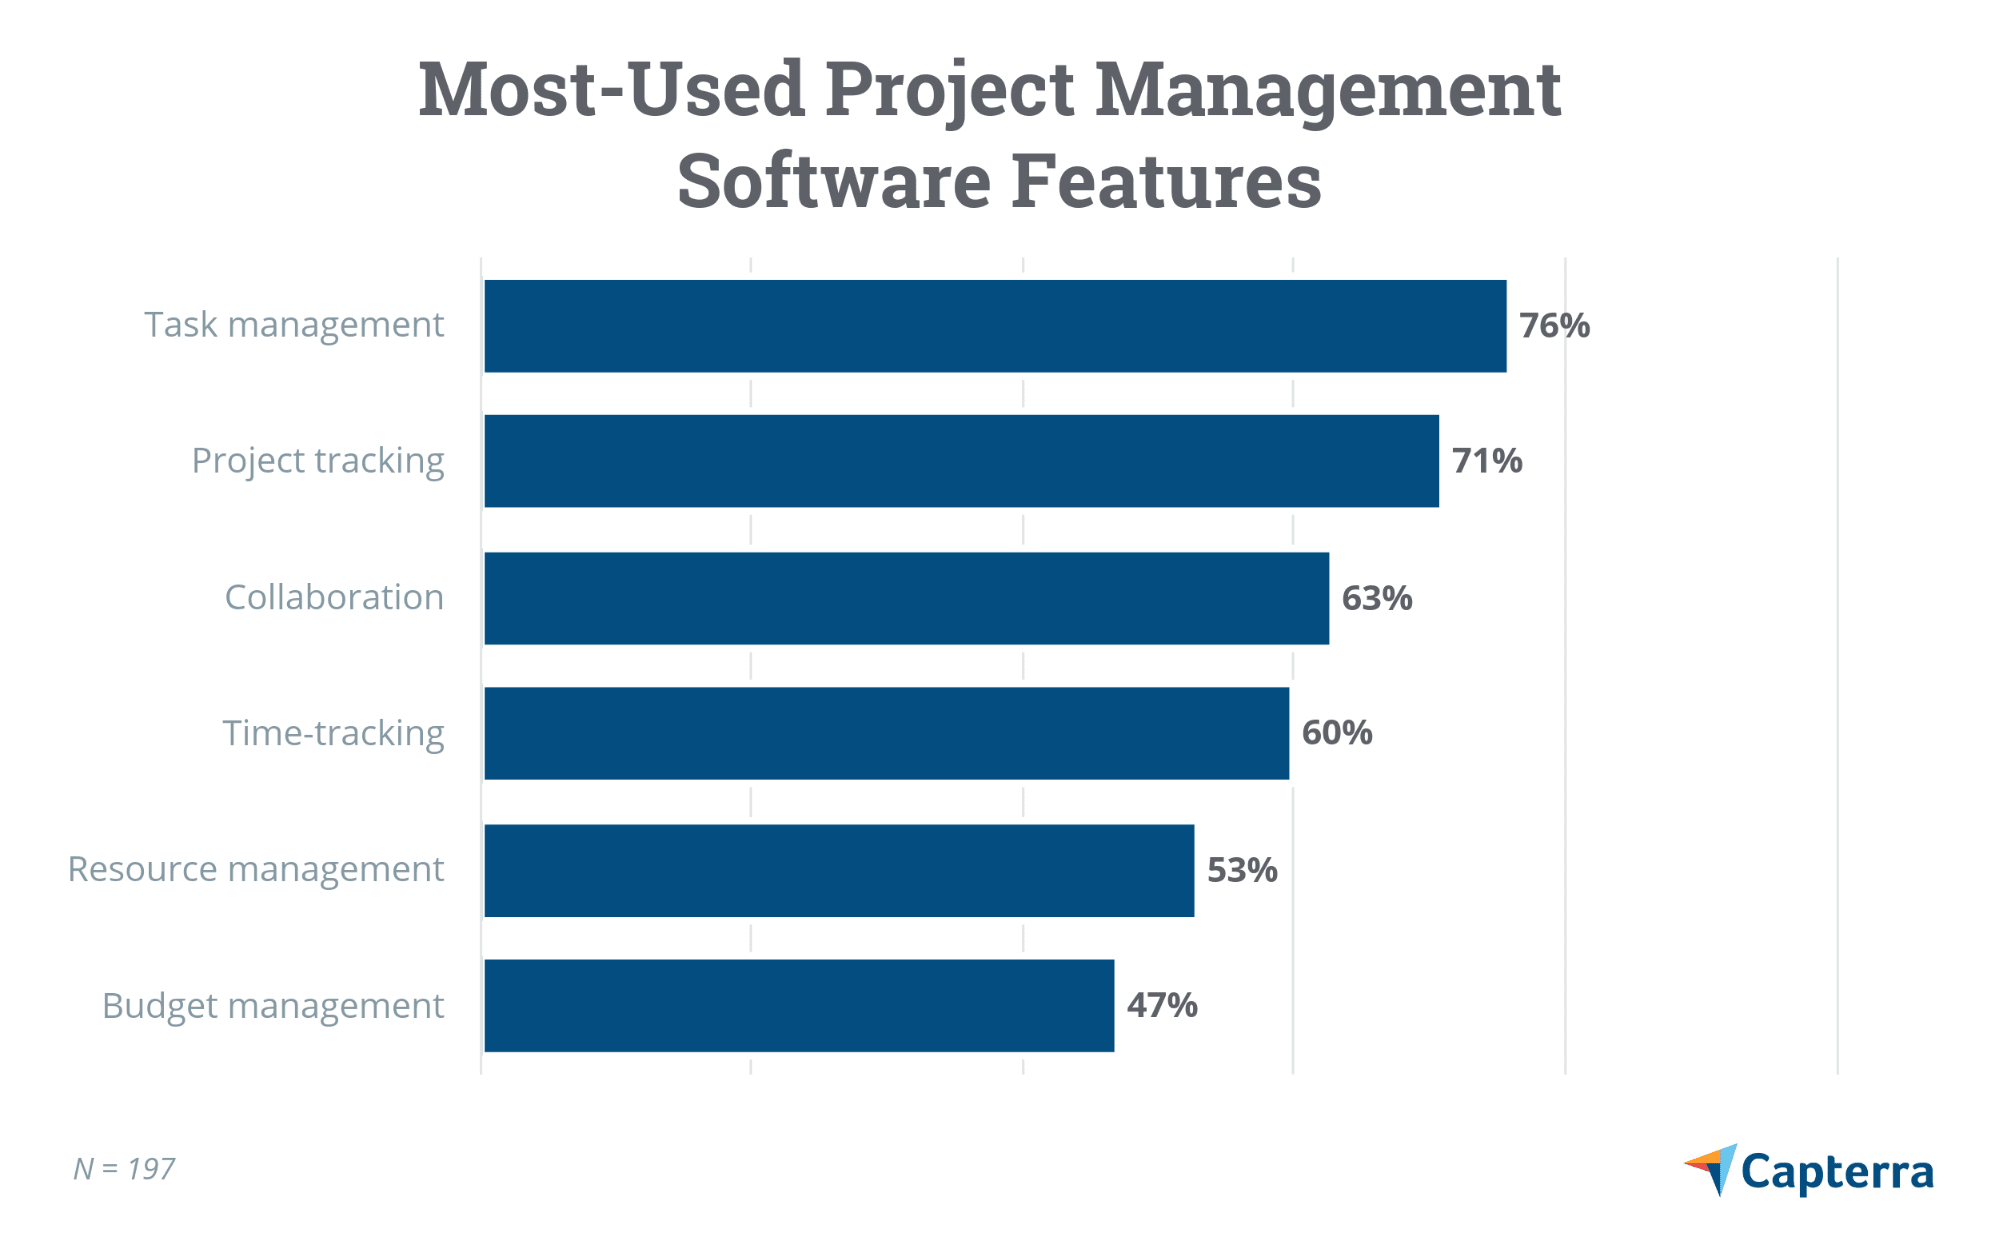 Most-used project management software features